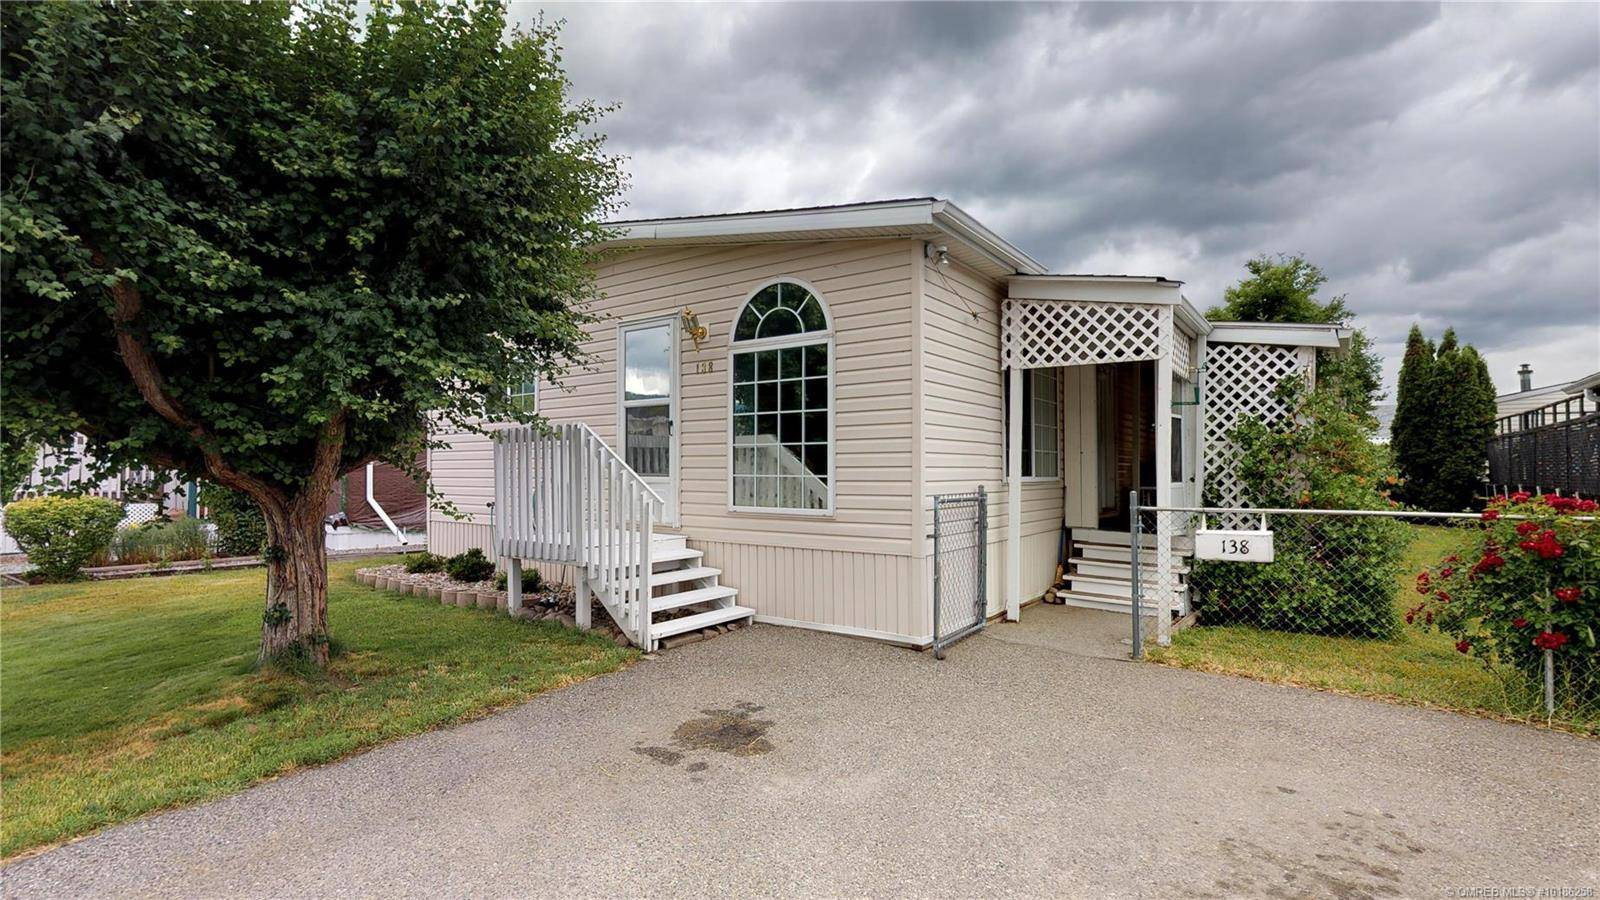 Home for sale at 2005 Boucherie Rd Unit 138 West Kelowna British Columbia - MLS: 10186258